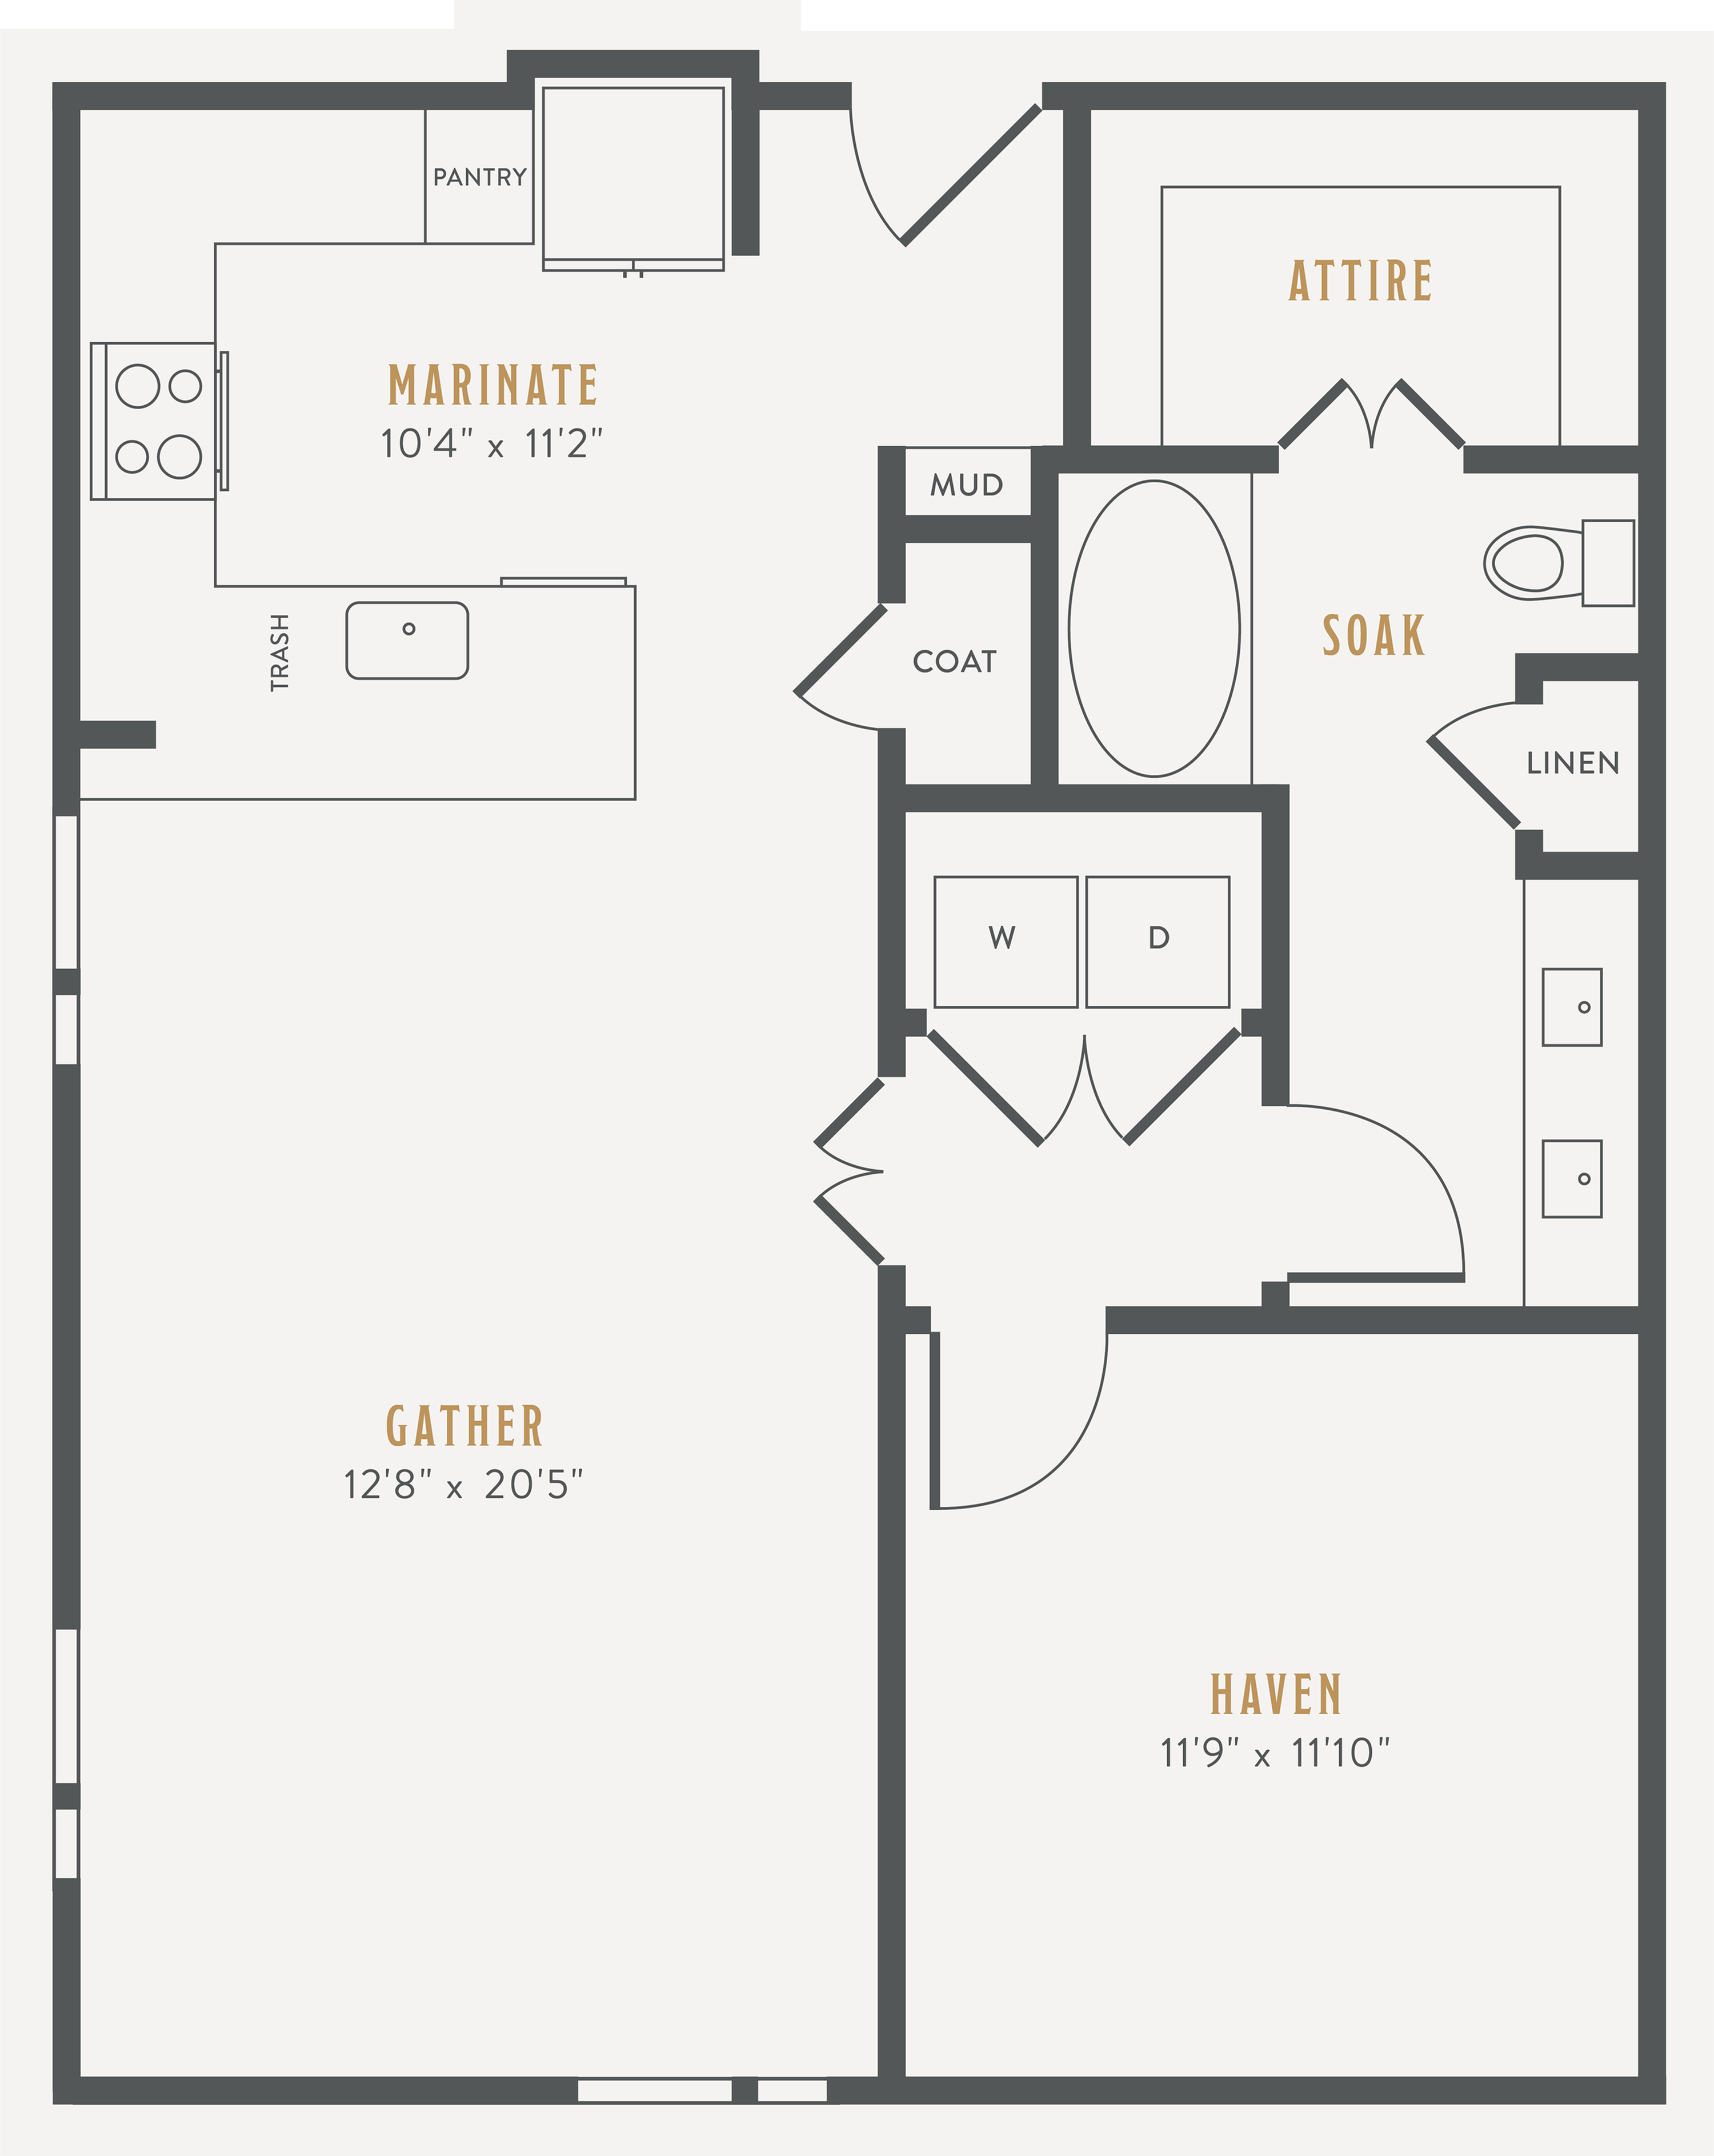 One Bedroom One Bath Kitchen Kitchen Pantry Living Dinning Room Laundry Room One Closet And Patio